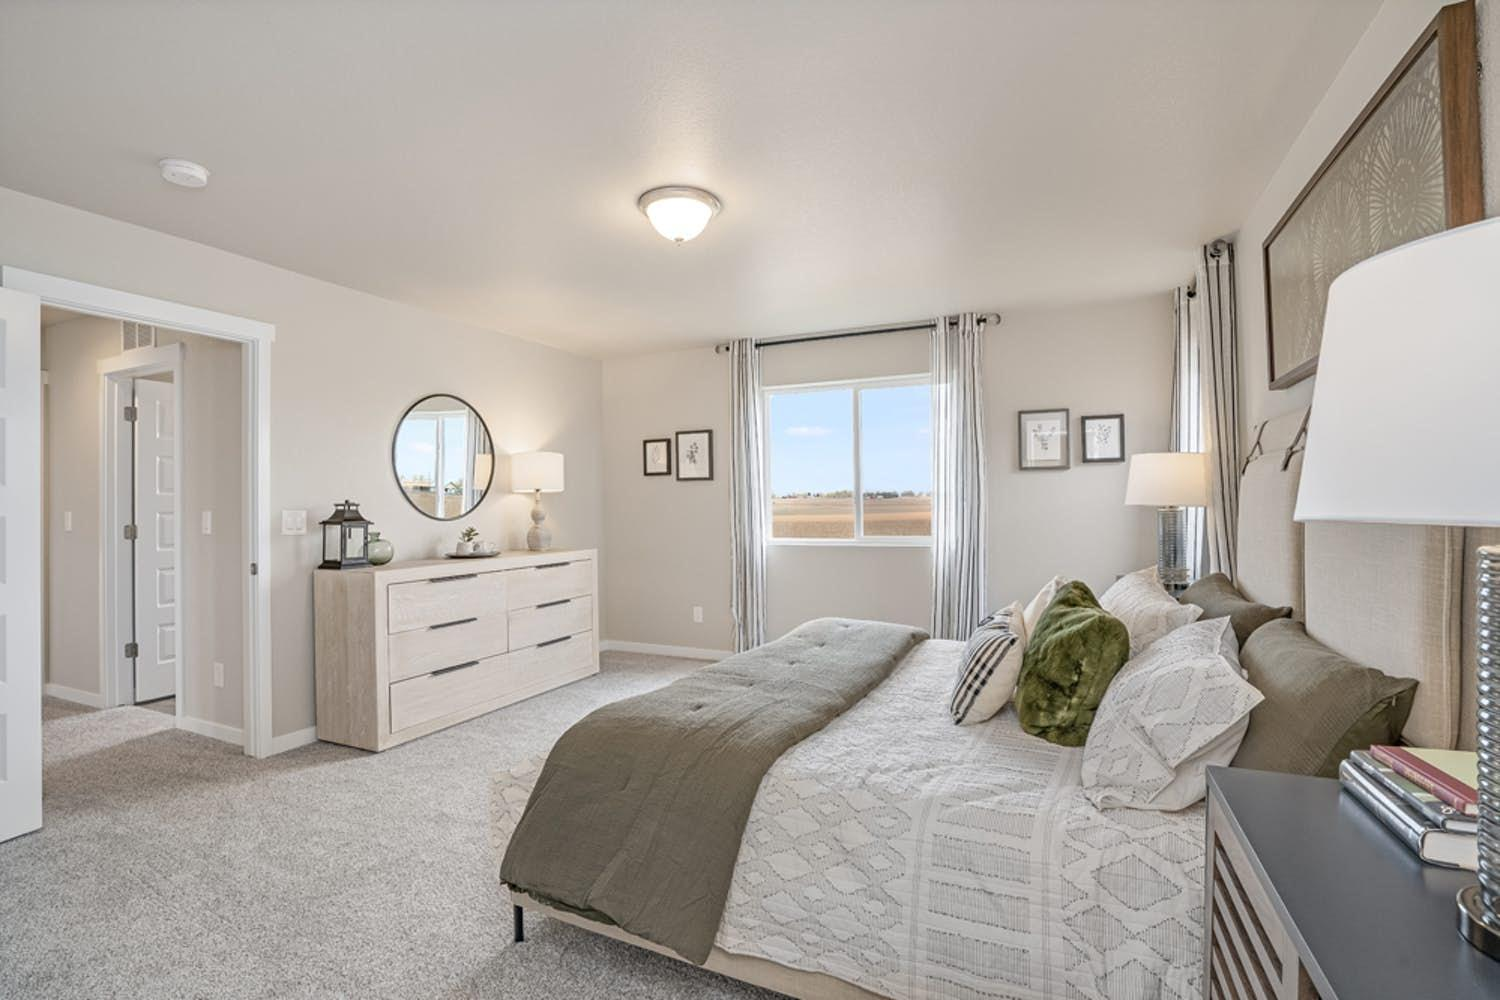 Bedroom featured in the Sonoma By View Homes Northern Colorado in Greeley, CO